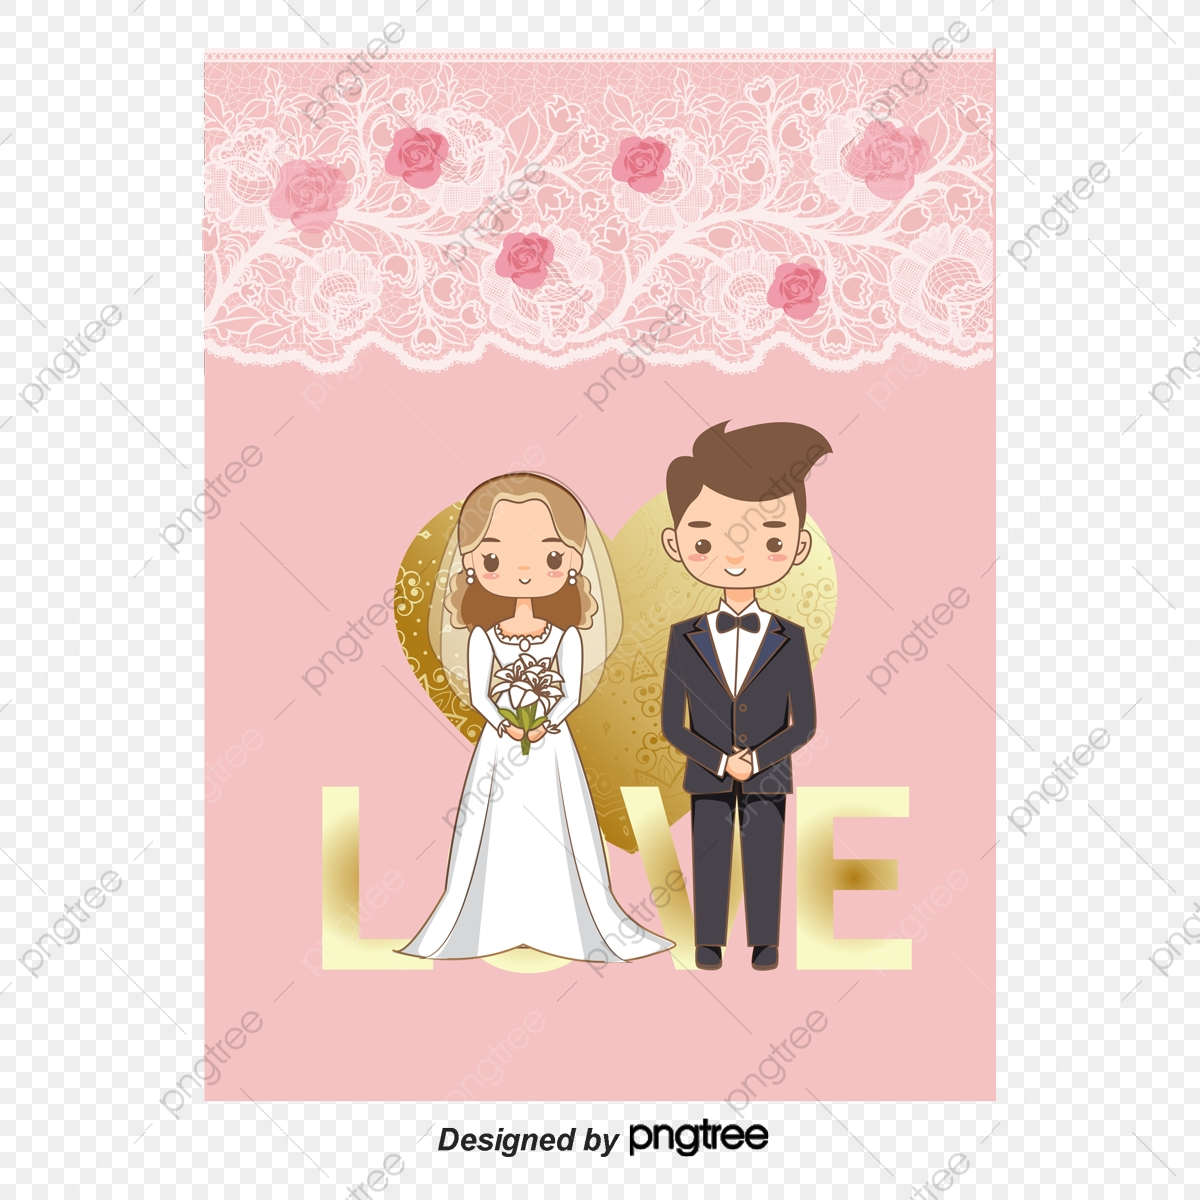 Happy Wedding Couple Vector Material Wedding Vector Couple Vector Wedding Png Transparent Clipart Image And Psd File For Free Download